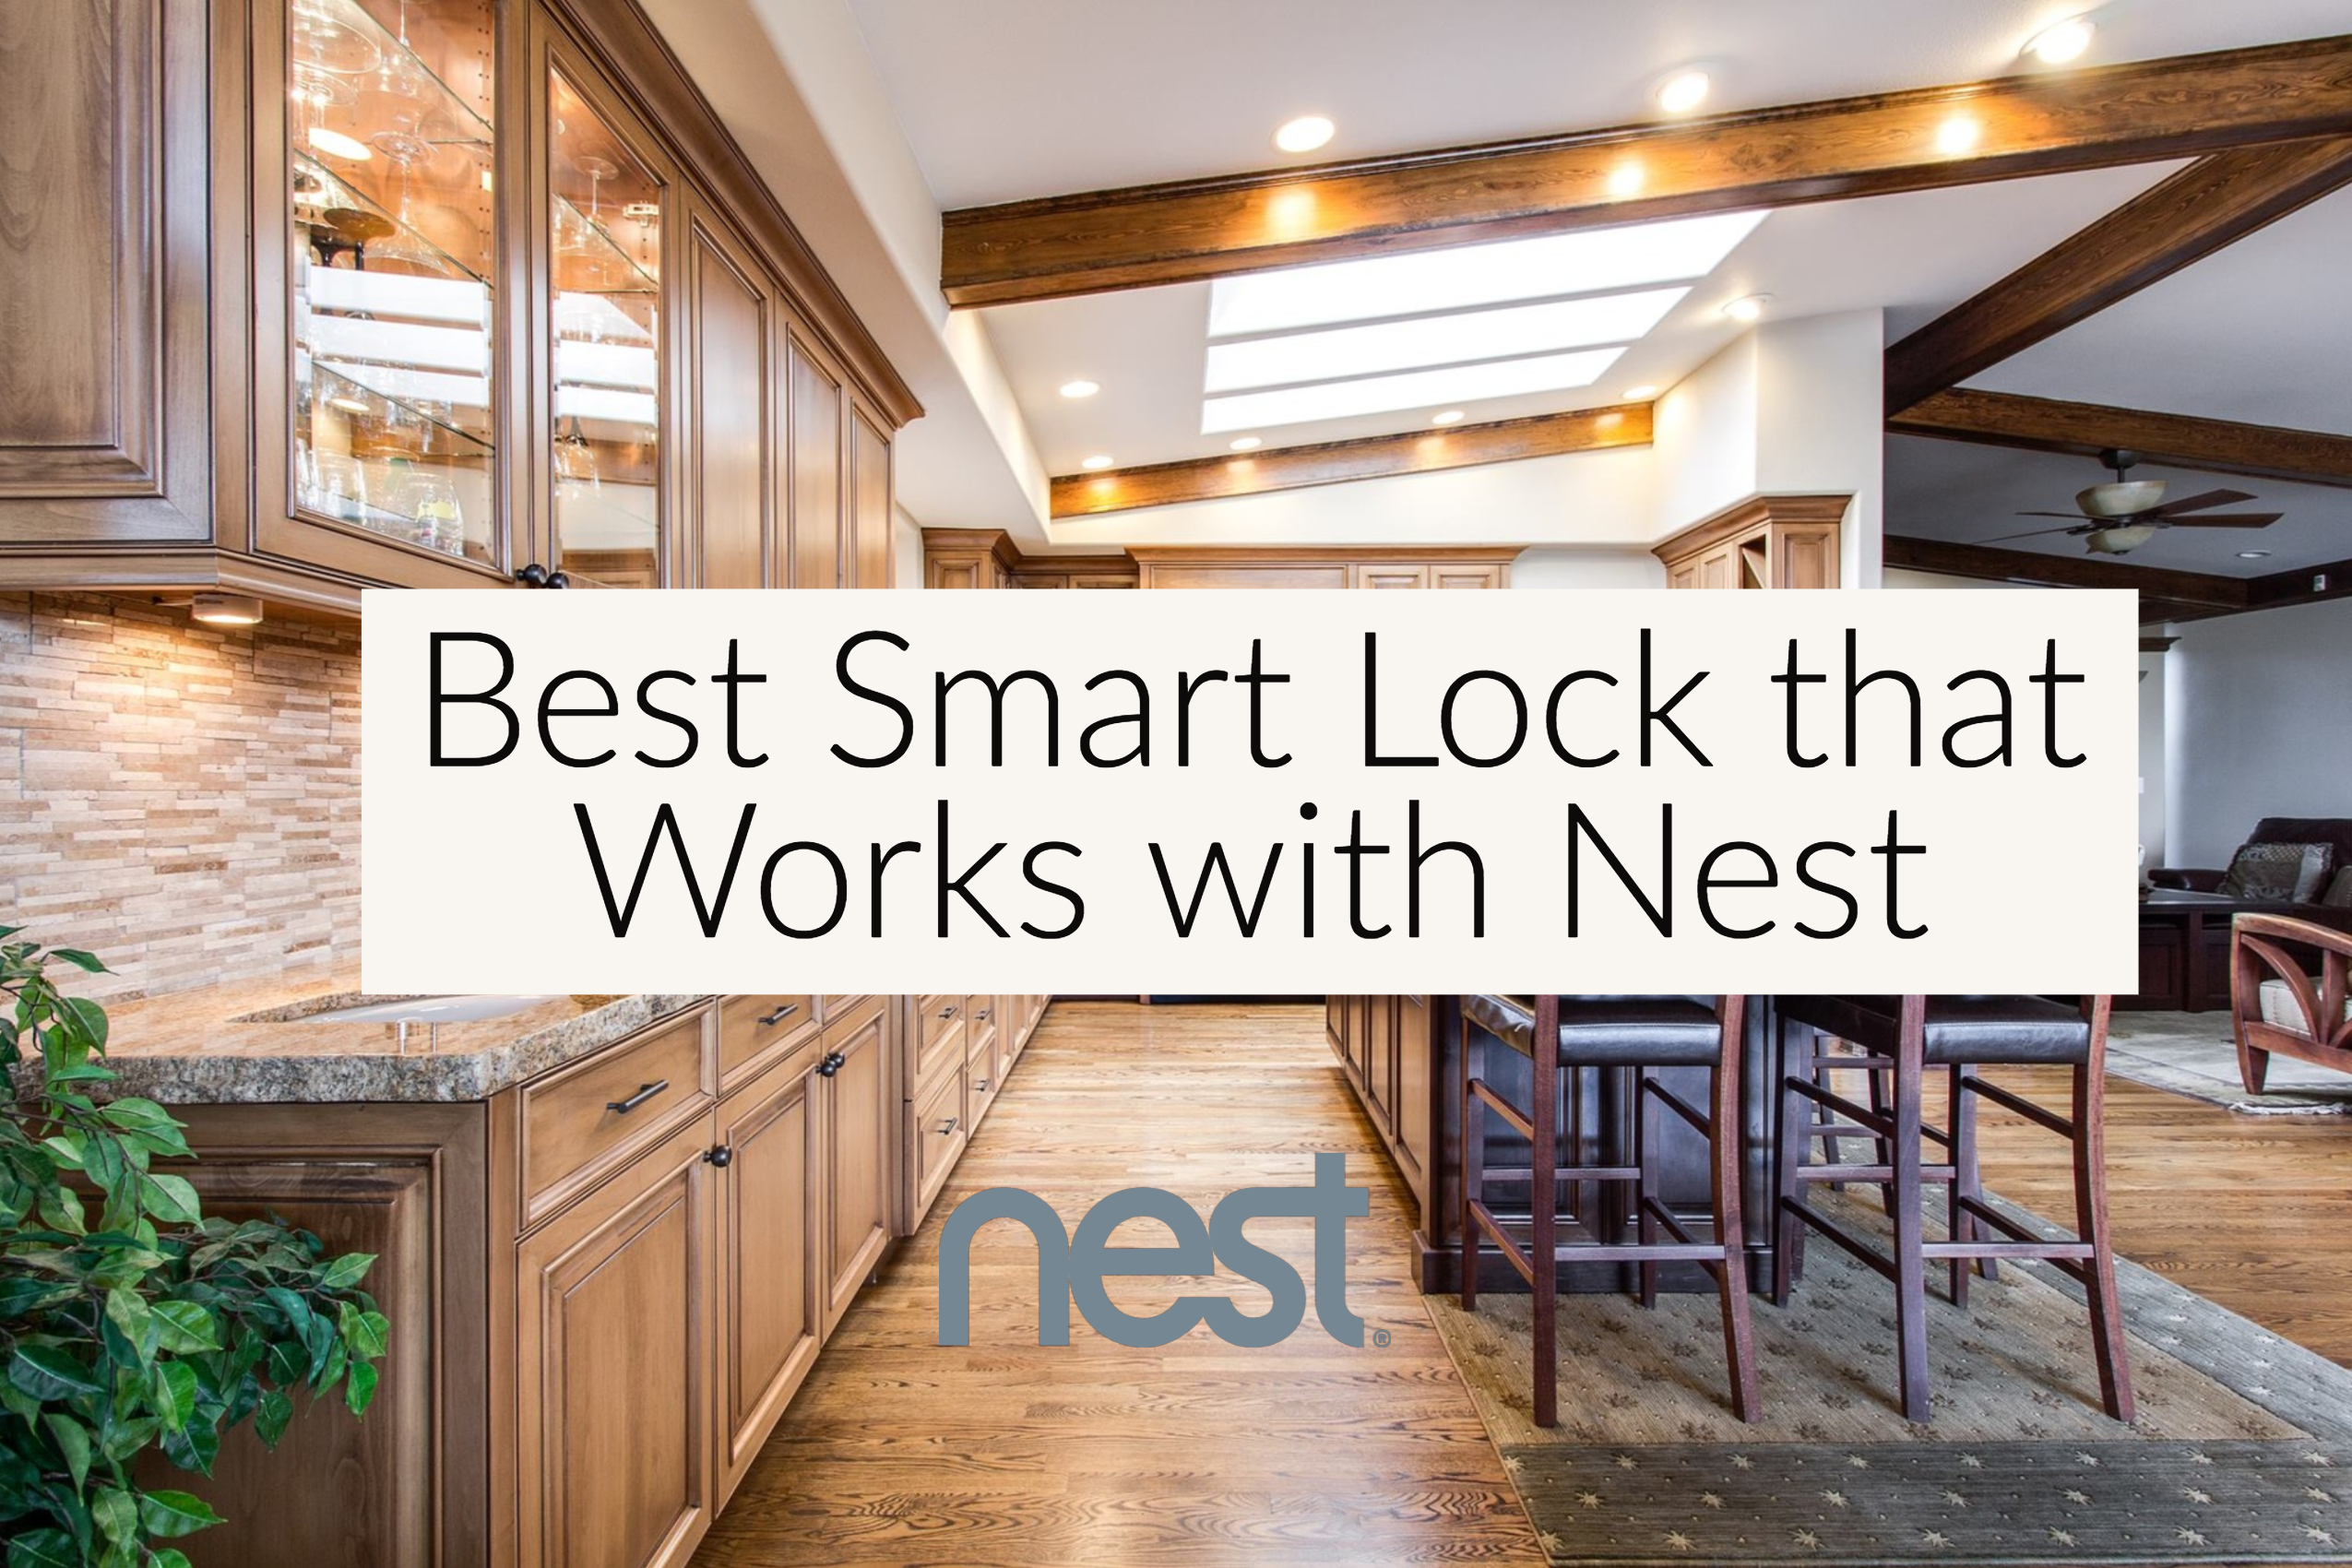 Best Smart Lock that Works With Nest